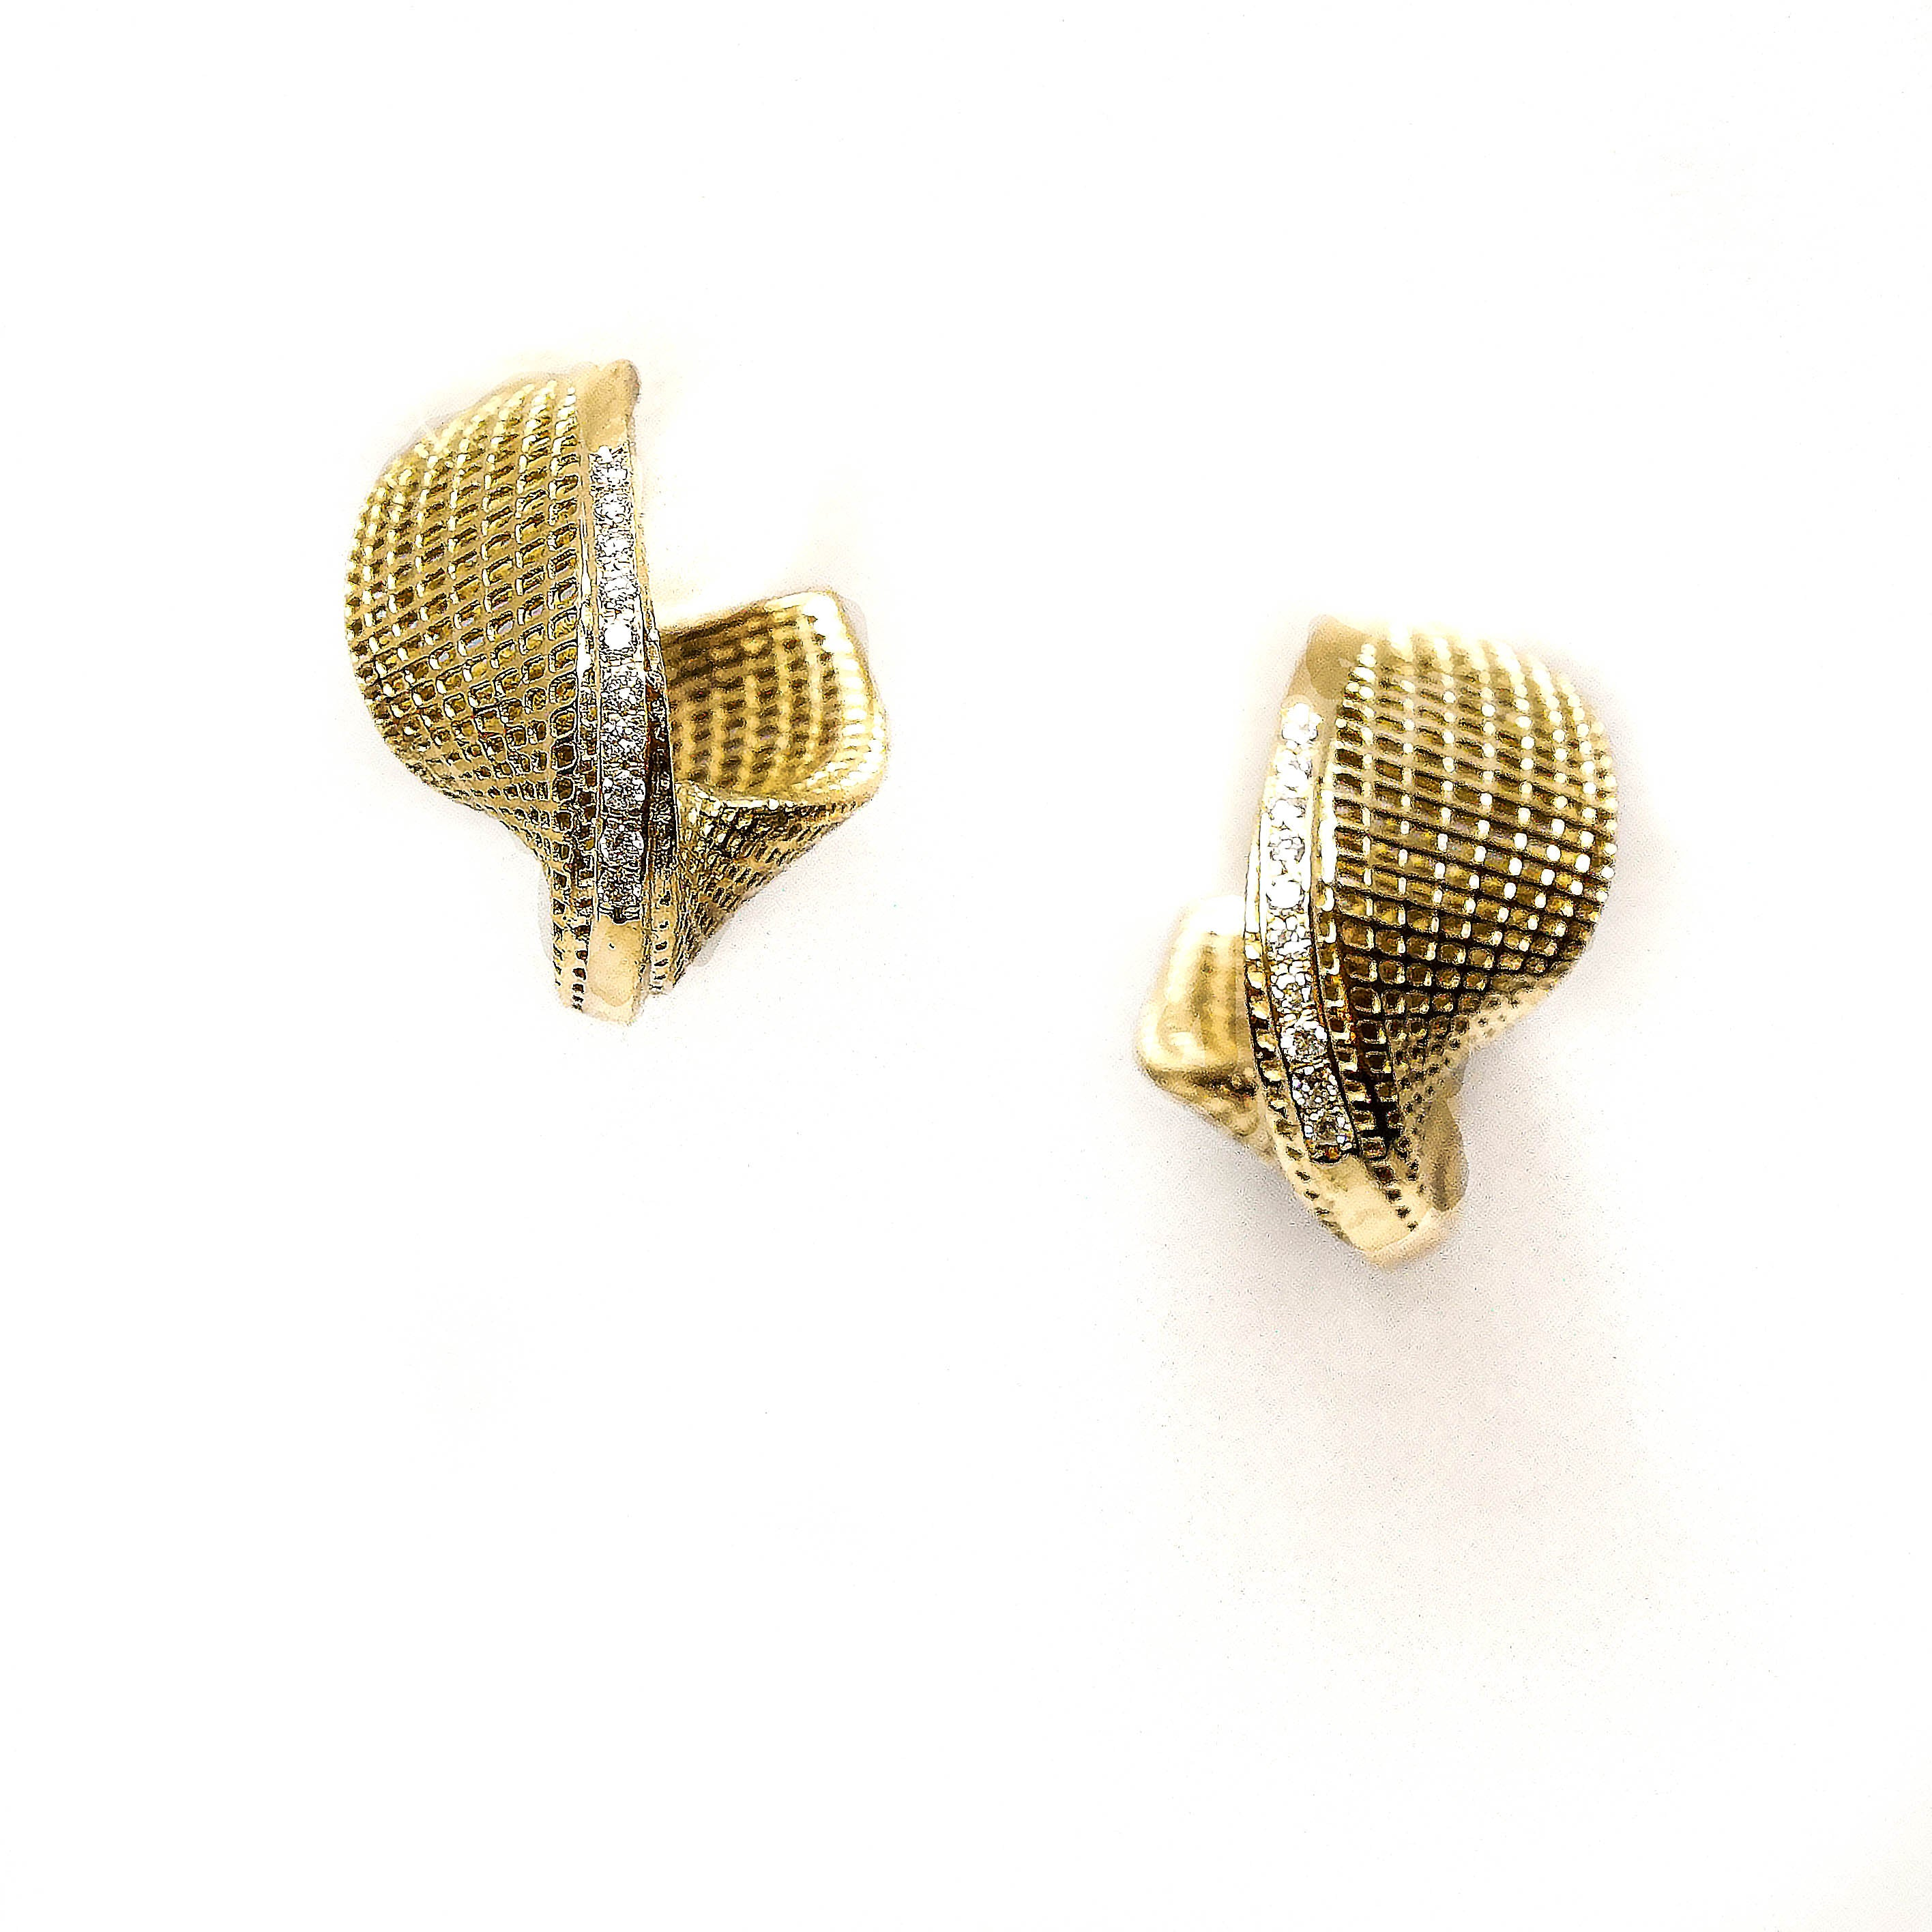 18K yellow gold- Diamonds Small Mobius Earrings -pave diamonds line